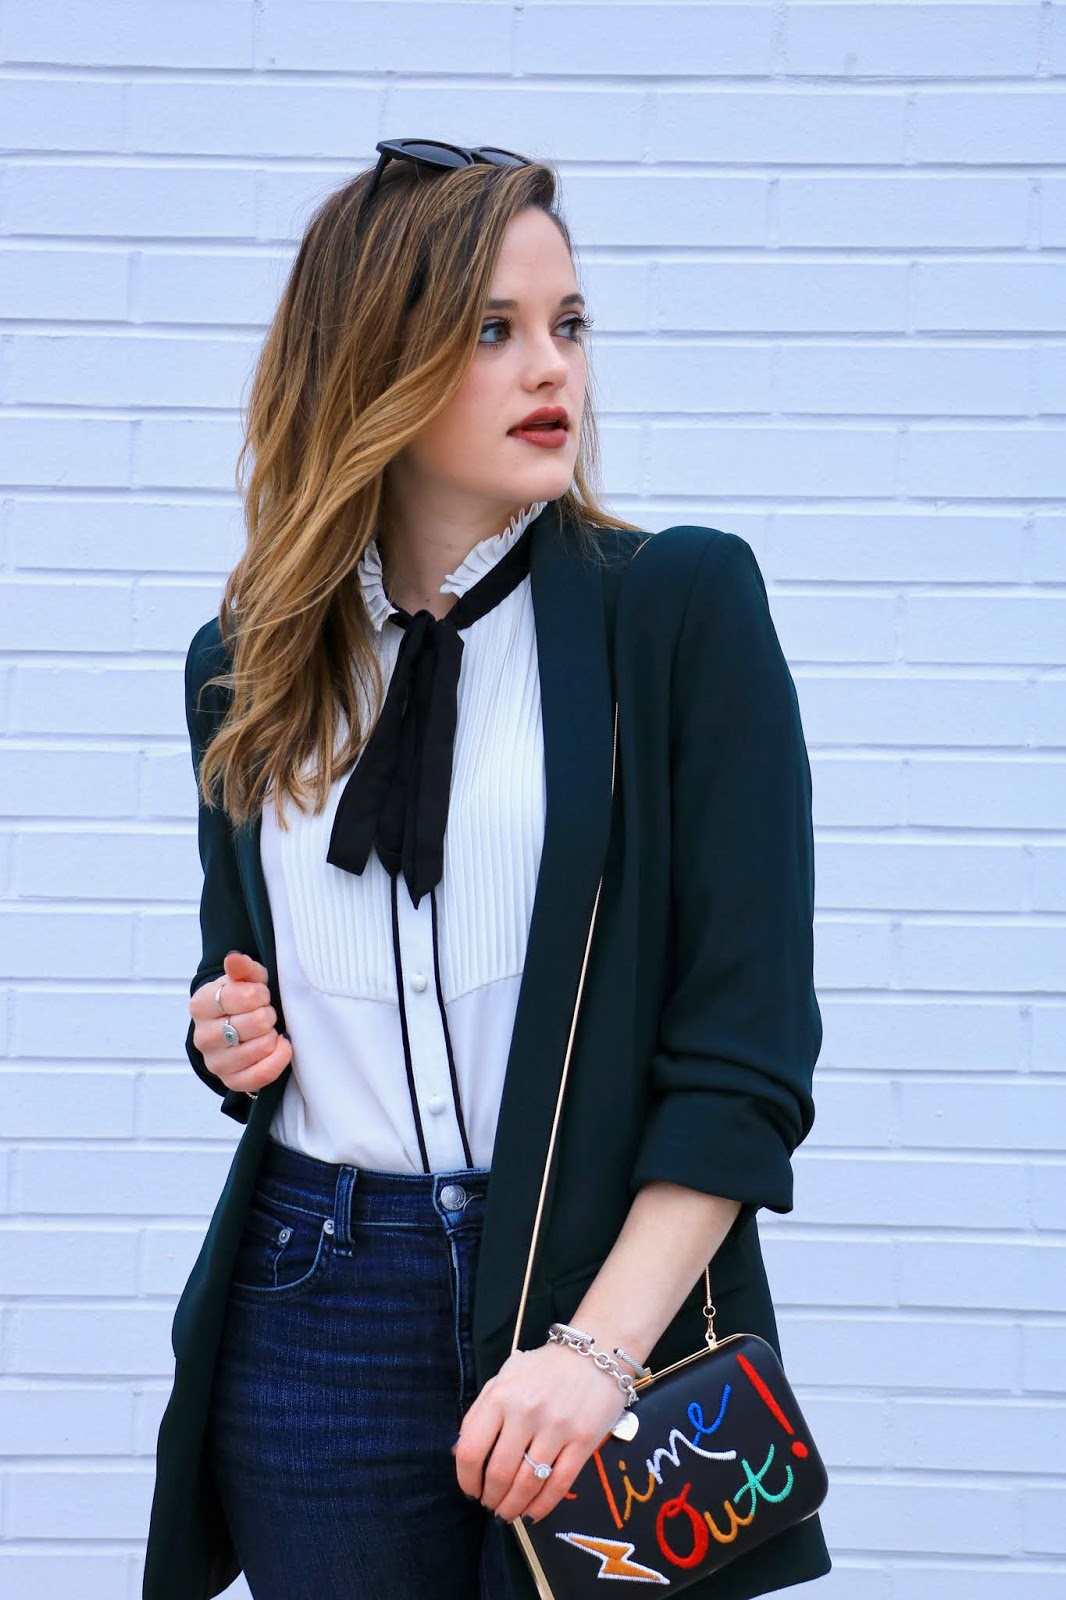 Nyc fashion blogger Kathleen Harper wearing an outfit with a high neck ruffle blouse.